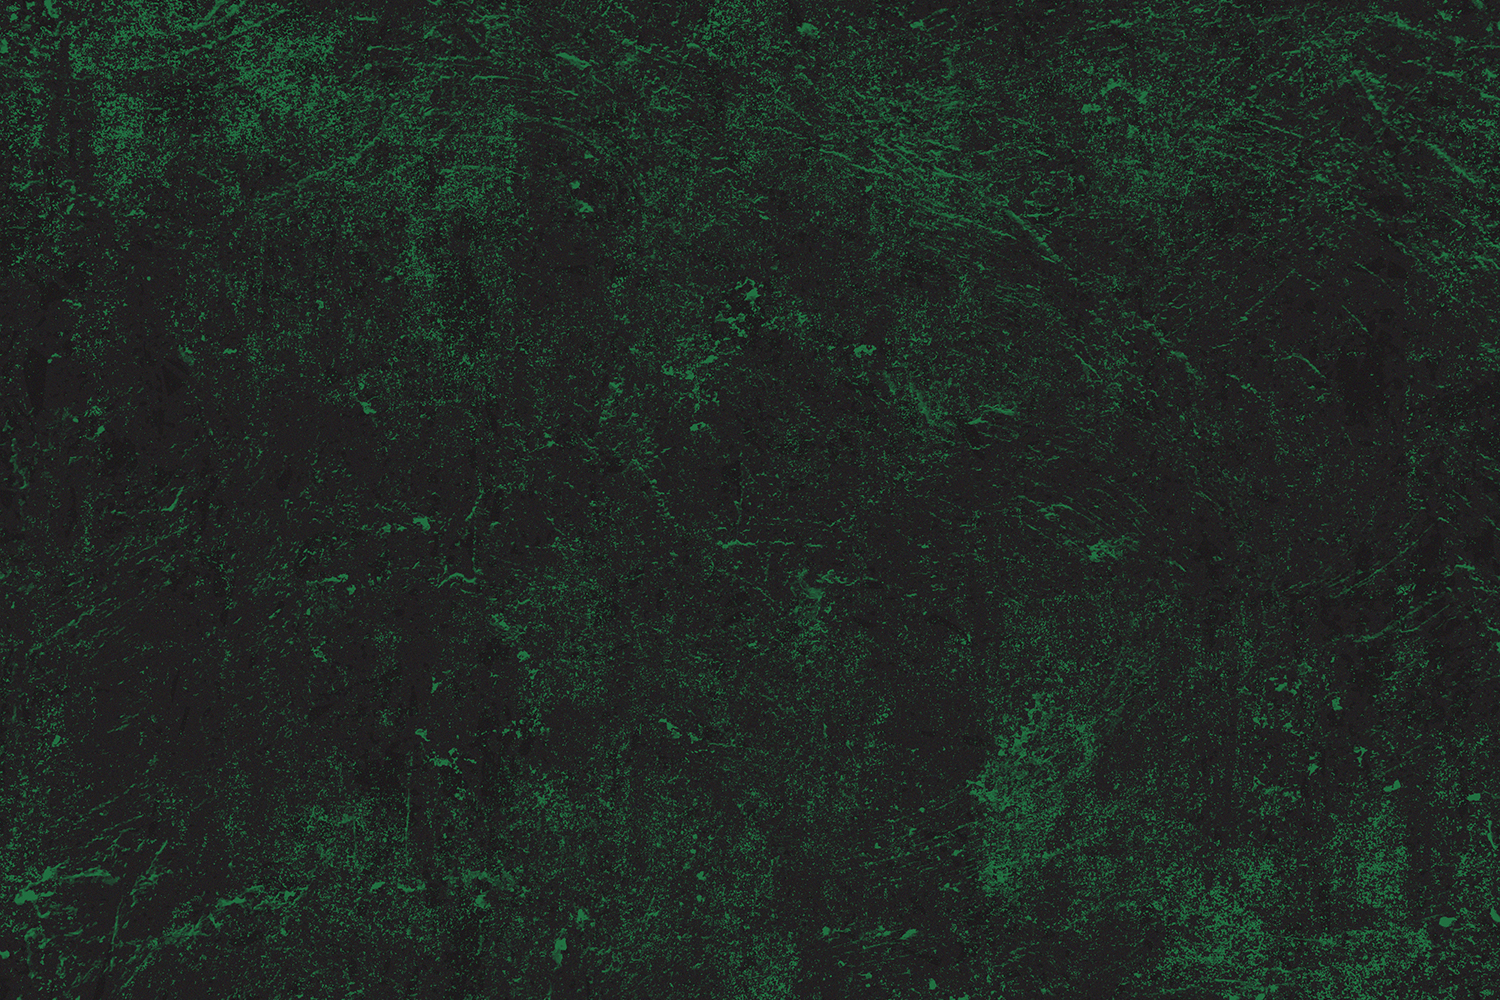 Grunge Texture Backgrounds example image 6